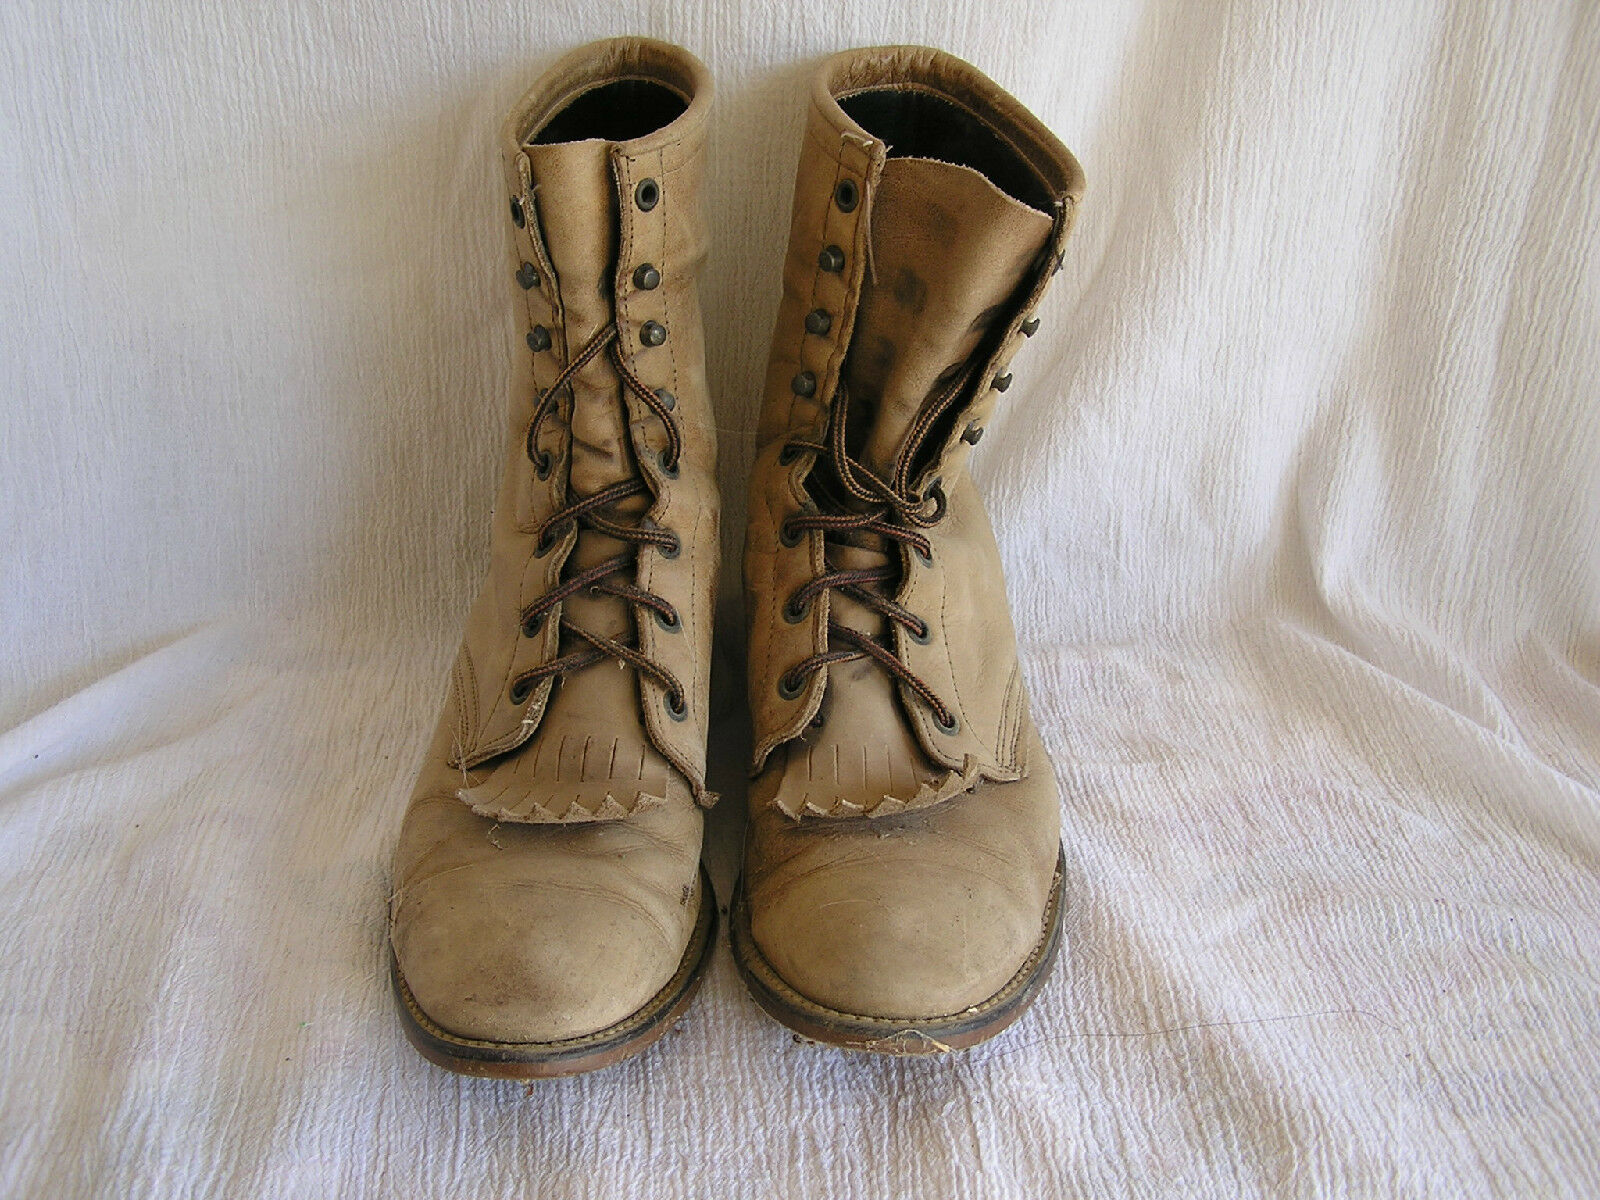 Laredo Brown Leather Cowboy Cowgirl Horse Riding Equestrian  Boots Women's 9.5 D  online